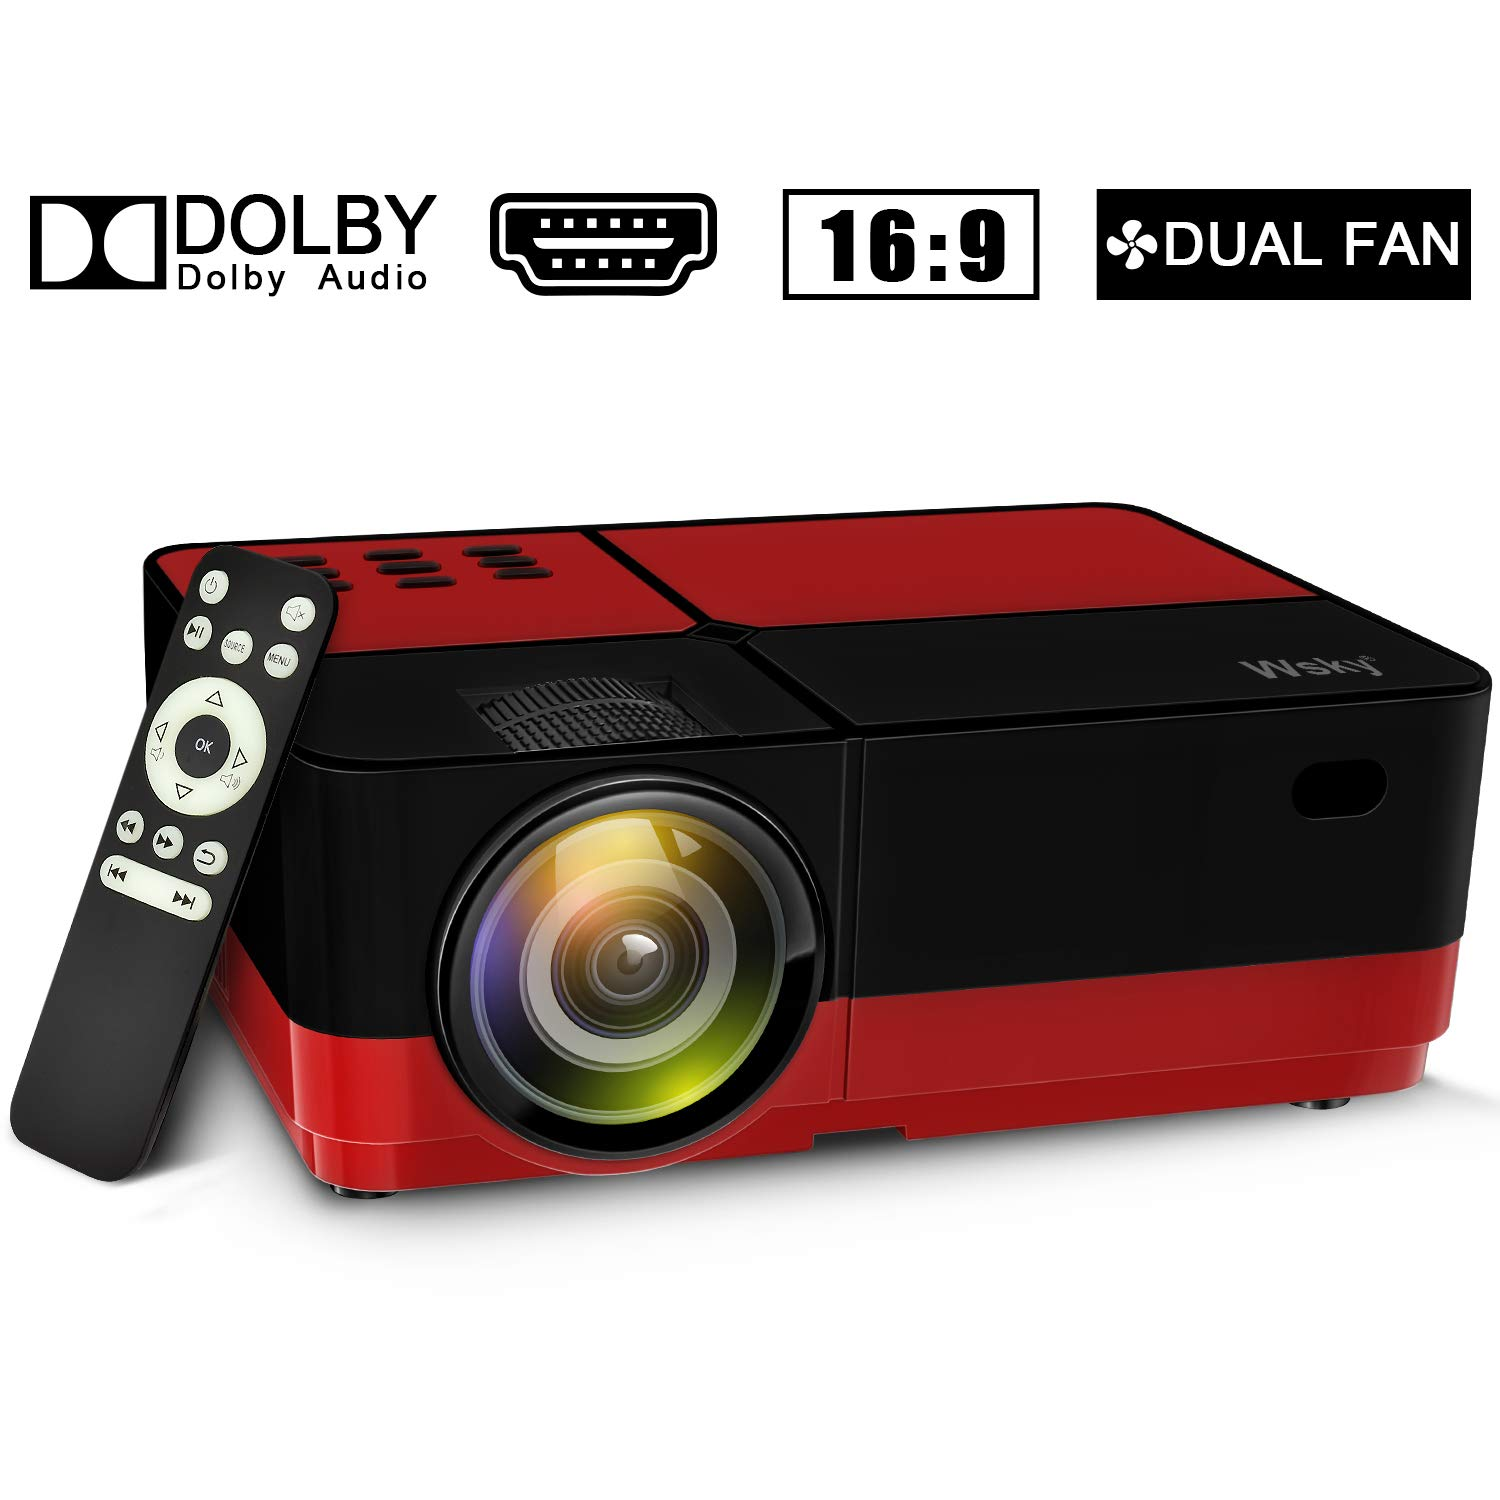 Wsky 2019 Newest LCD LED Outdoor Portable Home Theater Video Projector, Support HD 1080P Best for Outdoor Movie Night, Family, Compatible with Phone, PS4, Xbox, HDMI, USB, SD(Red) by Wsky